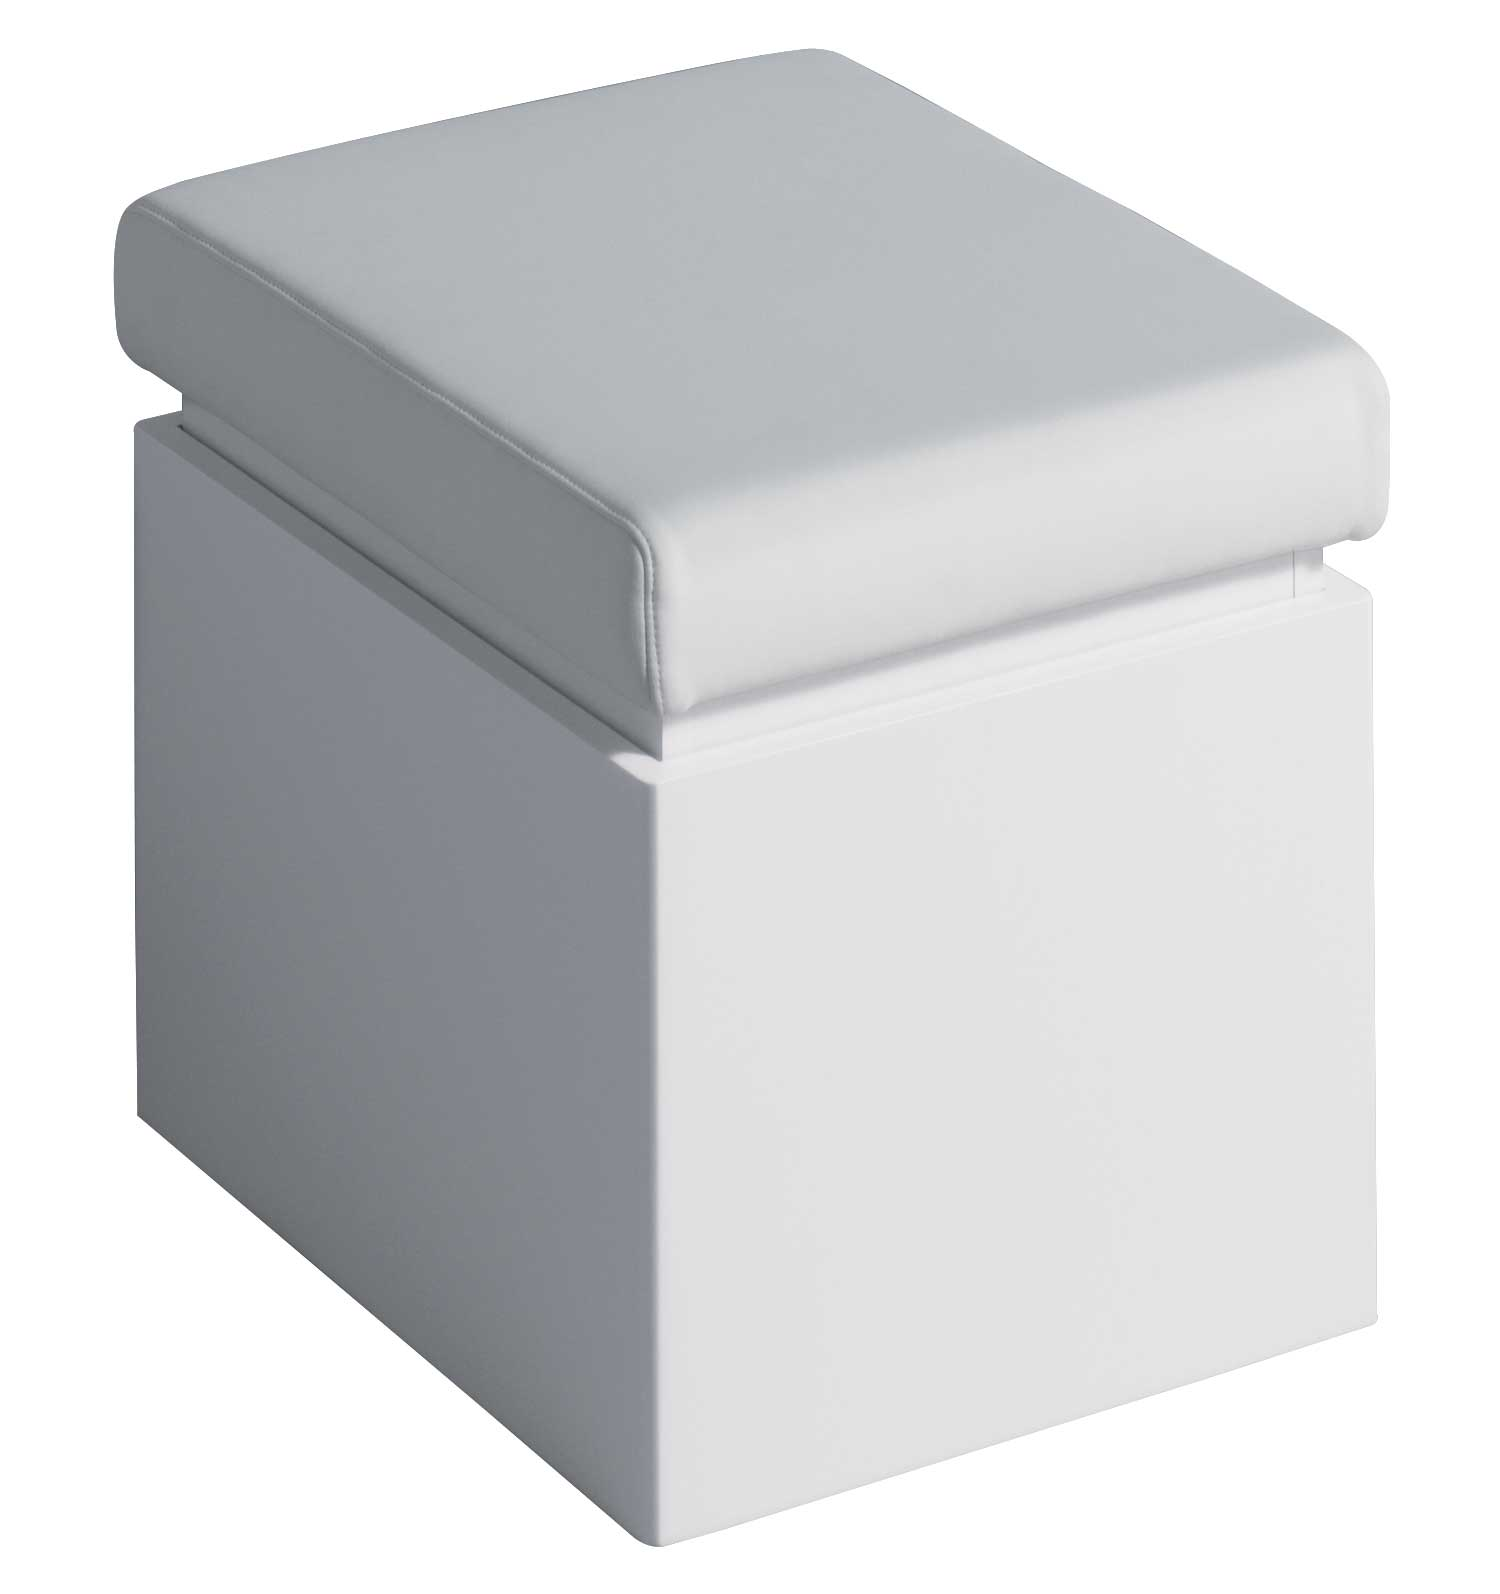 Twyford all white finish bathroom seat with storage ta0901wh for Chair with storage